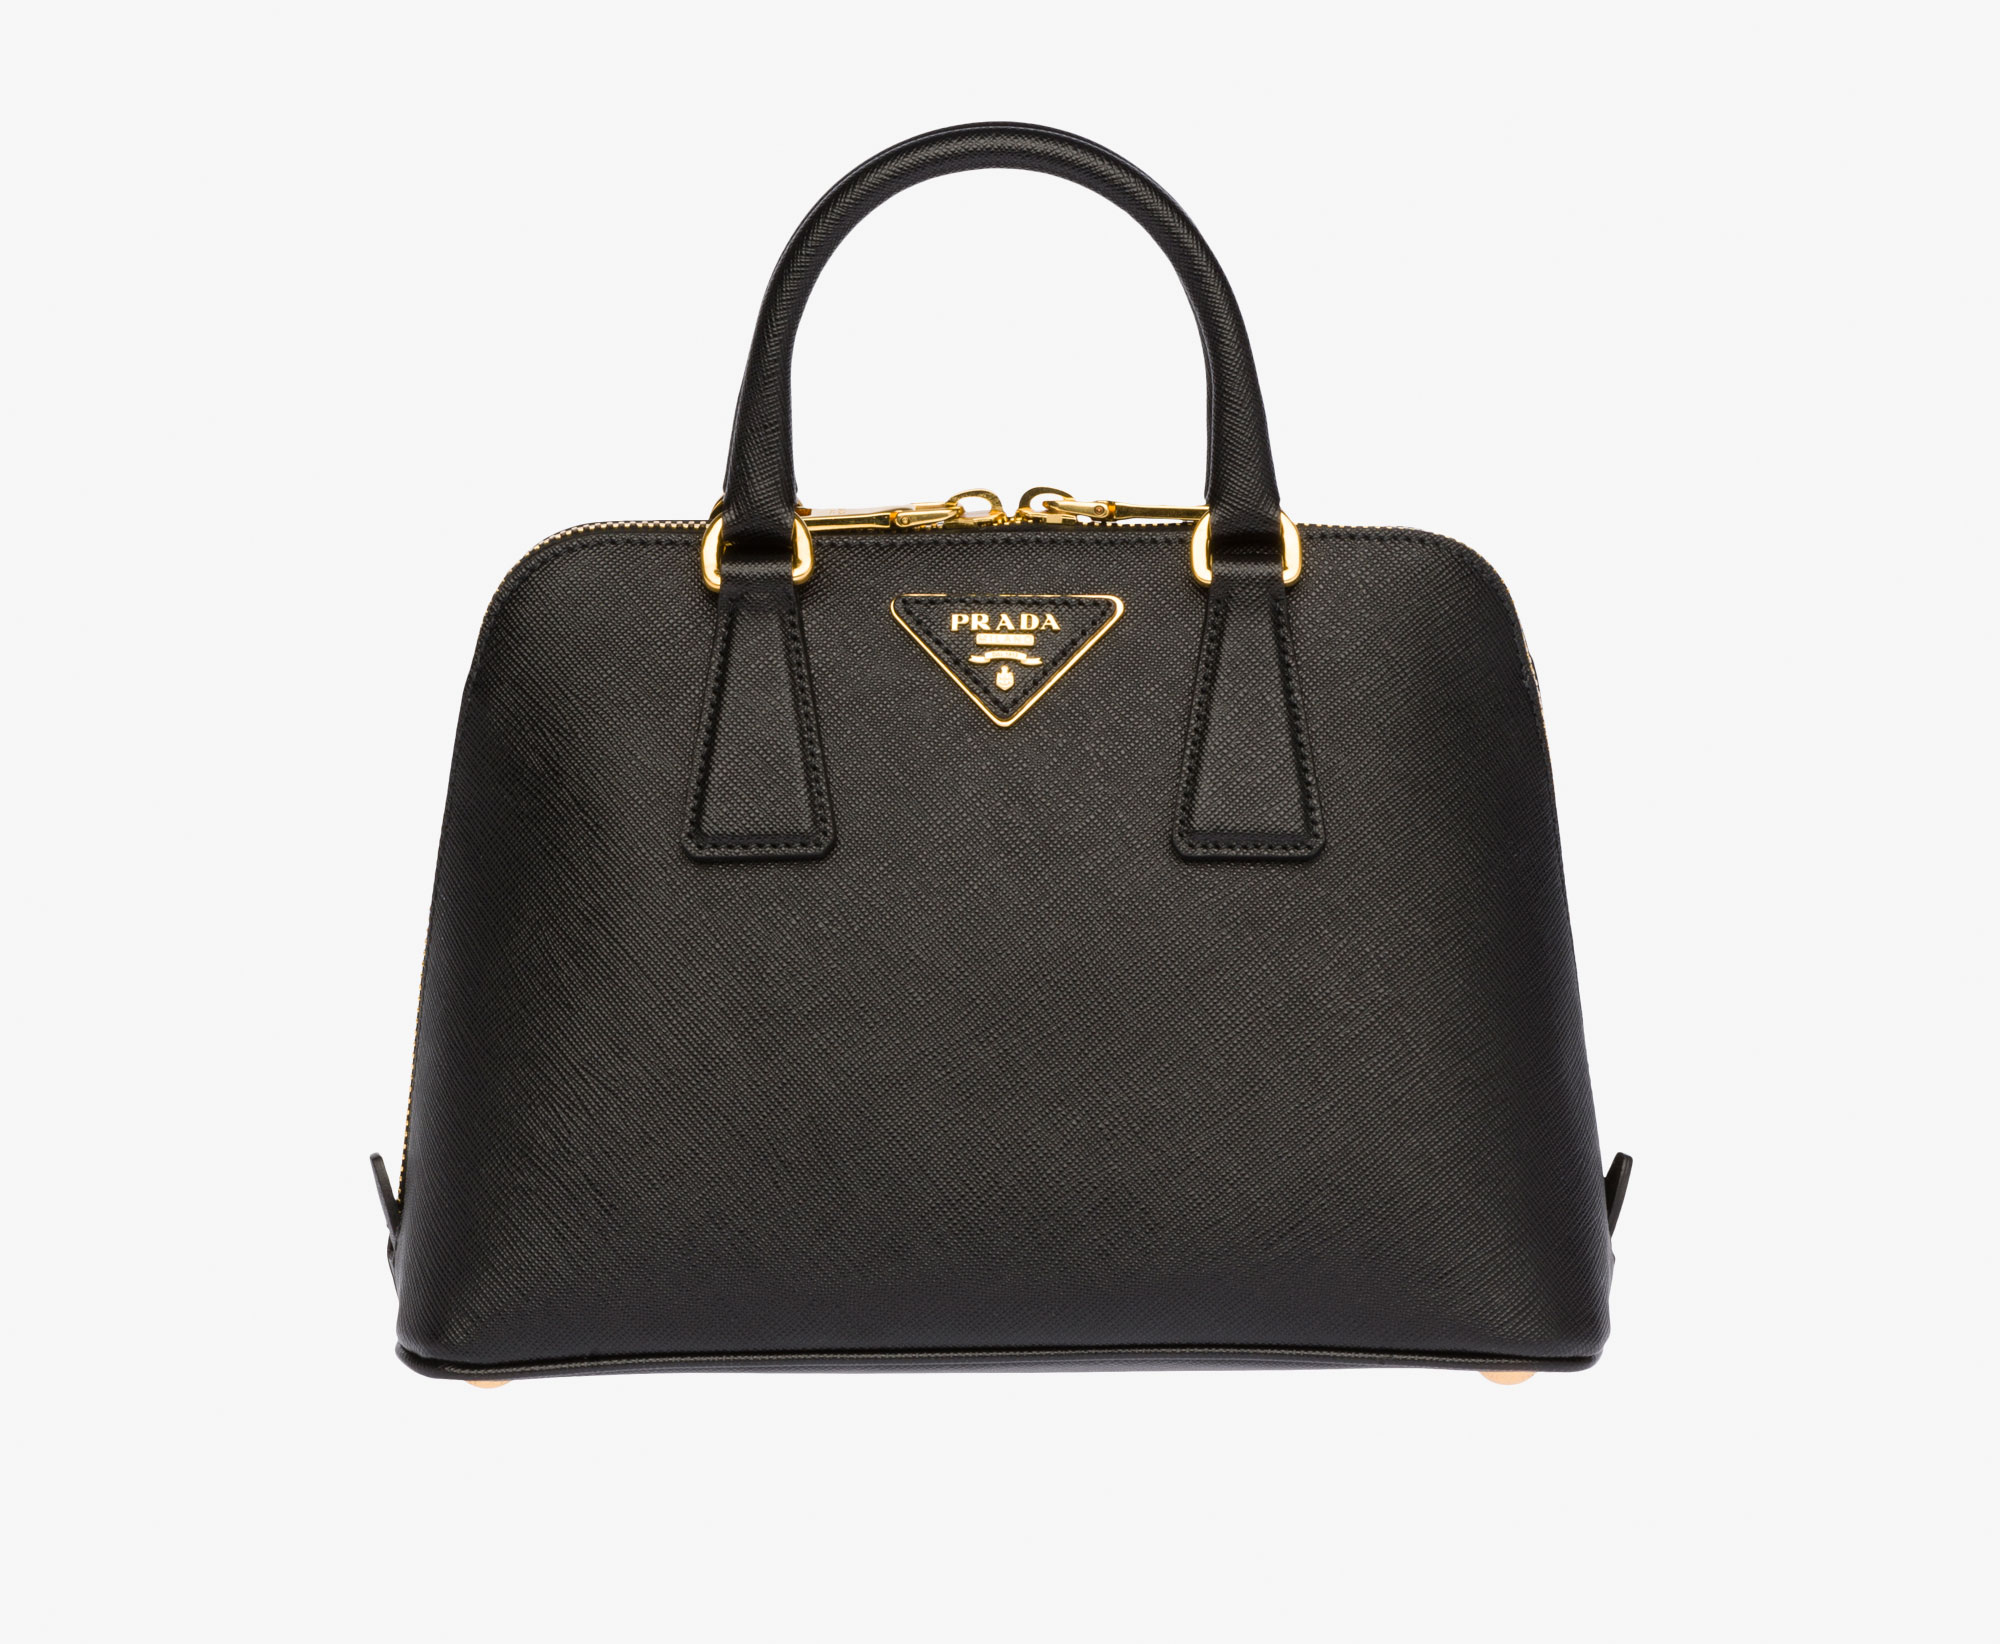 Prada Bag Price